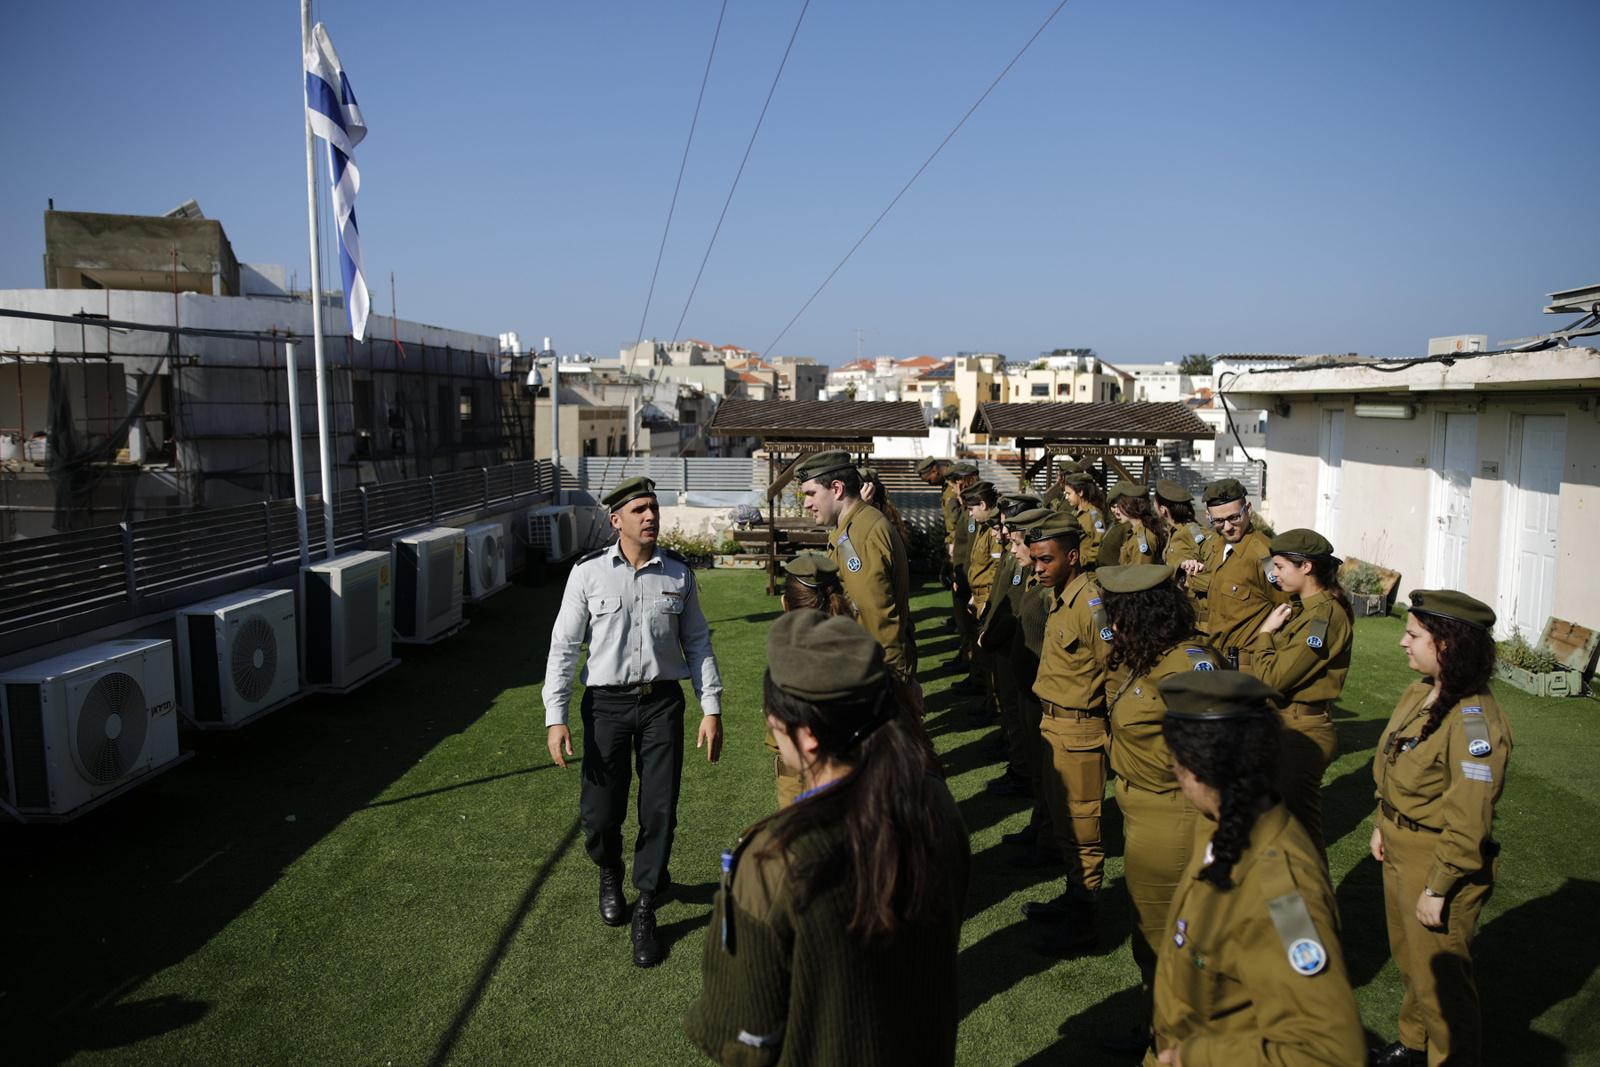 Soldiers prepare themselves to stand in order in front of the Master Seargant who is checking on their appearance and manner, on the rooftop of the IDF's Galgalatz radio station, January 07, 2018, in Tel Aviv, Israel. This routine takes place twice a week in a location decided by the Master Seargant, and occurs frequently on the station's rooftop.